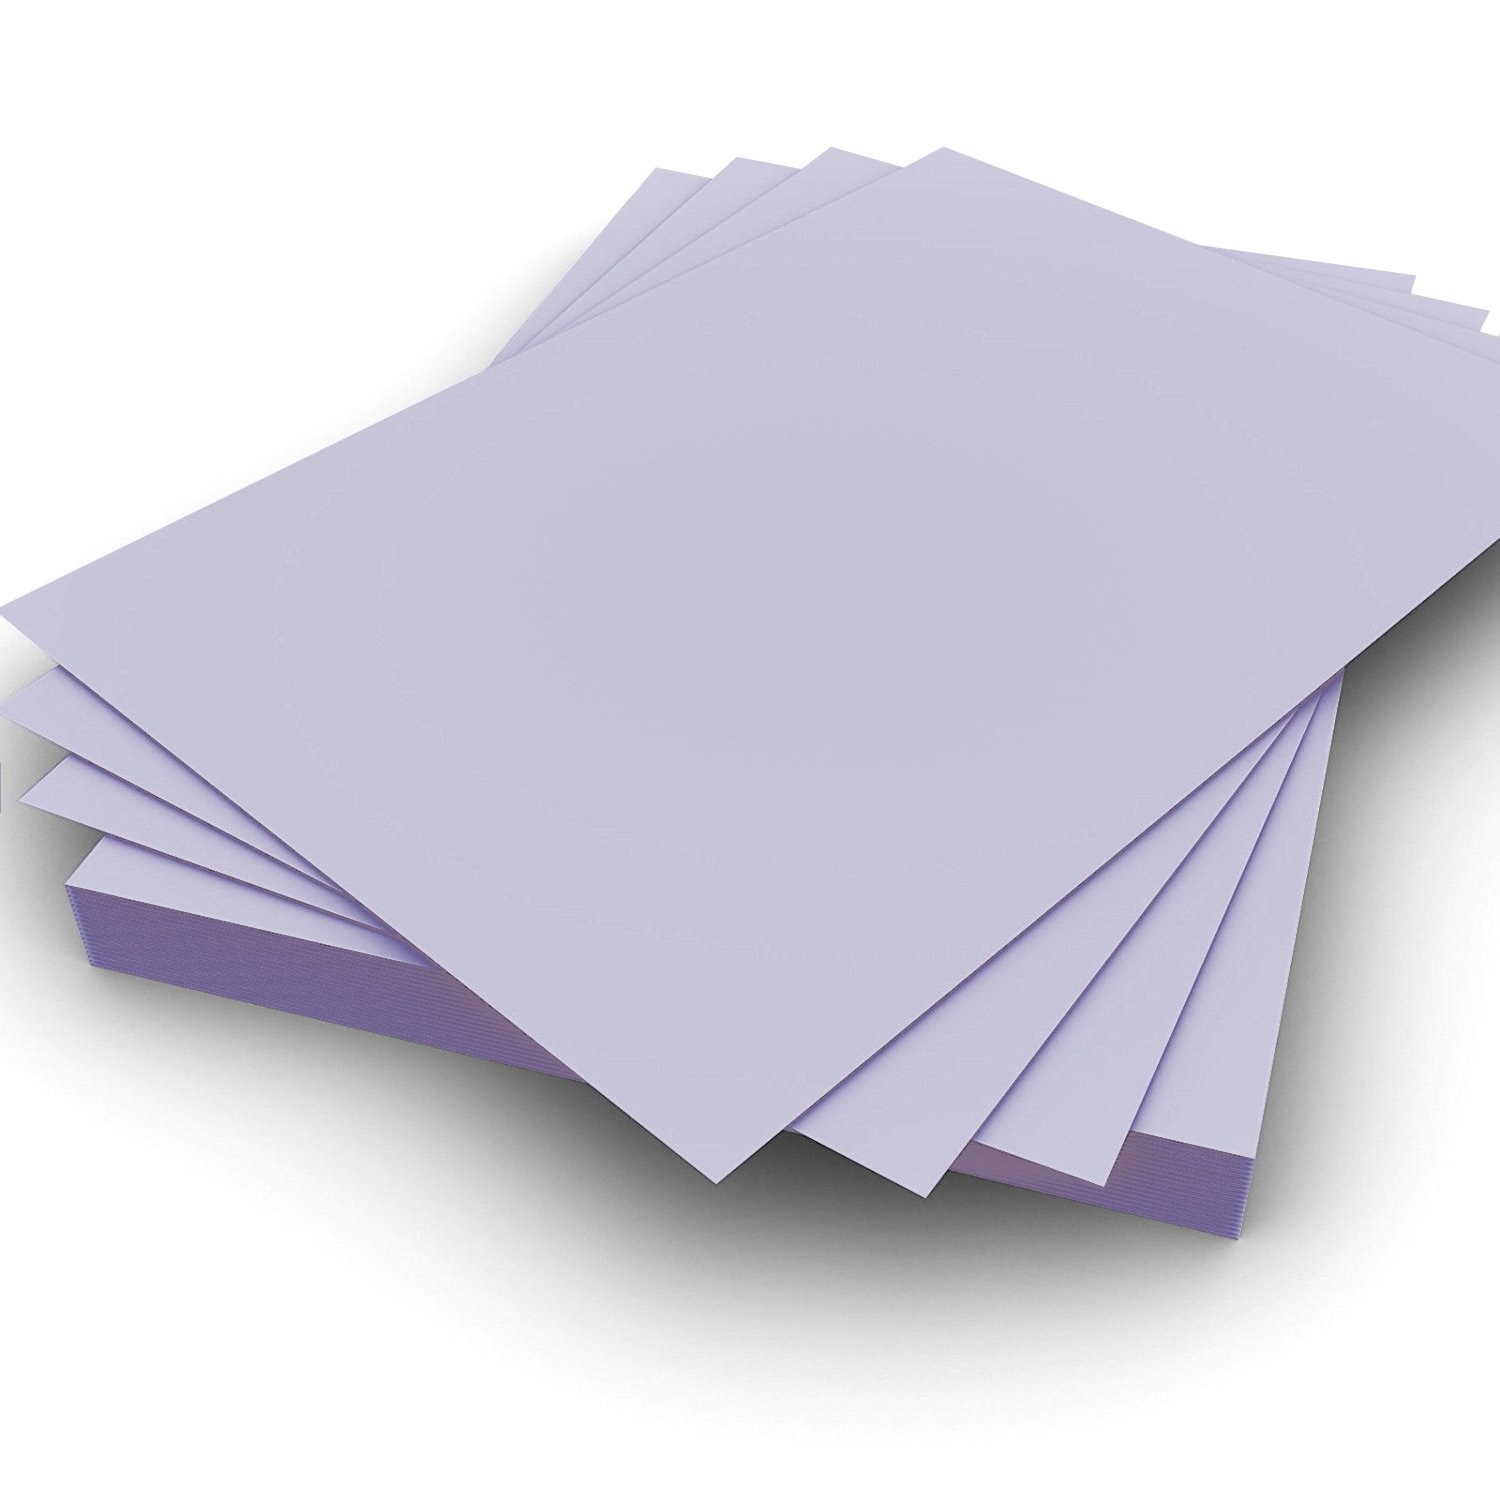 A5 160gsm Plain Pastel Lavender Card Pack of 100 Perfect for Crafting, Card Making, Invitations for birthdays weddings and special occasions - by Party Decor